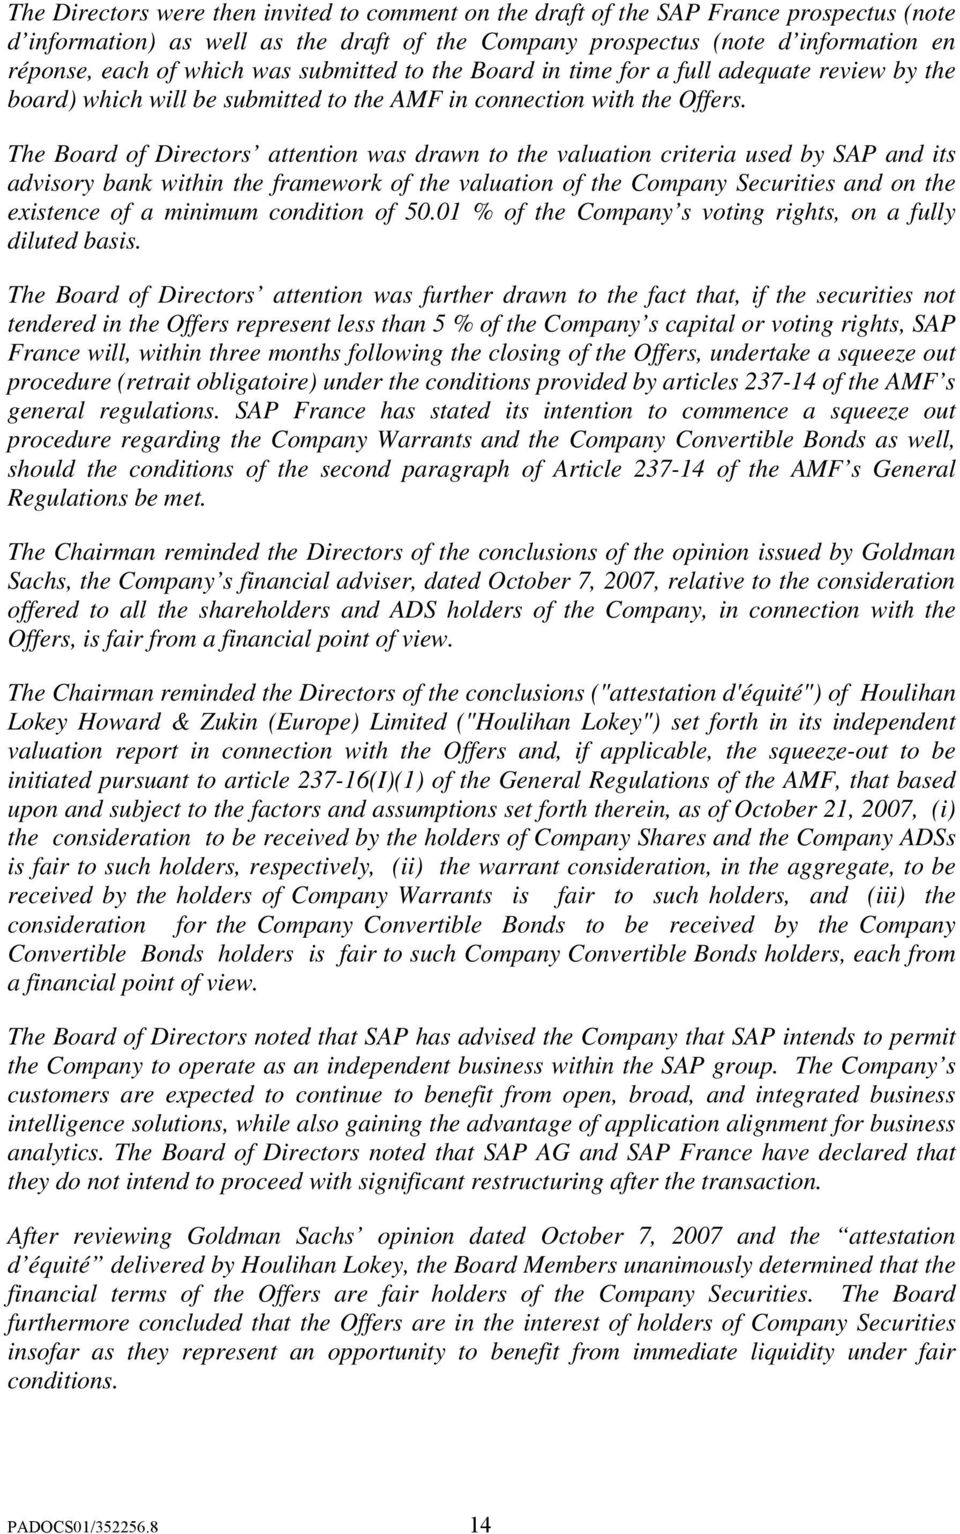 The Board of Directors attention was drawn to the valuation criteria used by SAP and its advisory bank within the framework of the valuation of the Company Securities and on the existence of a